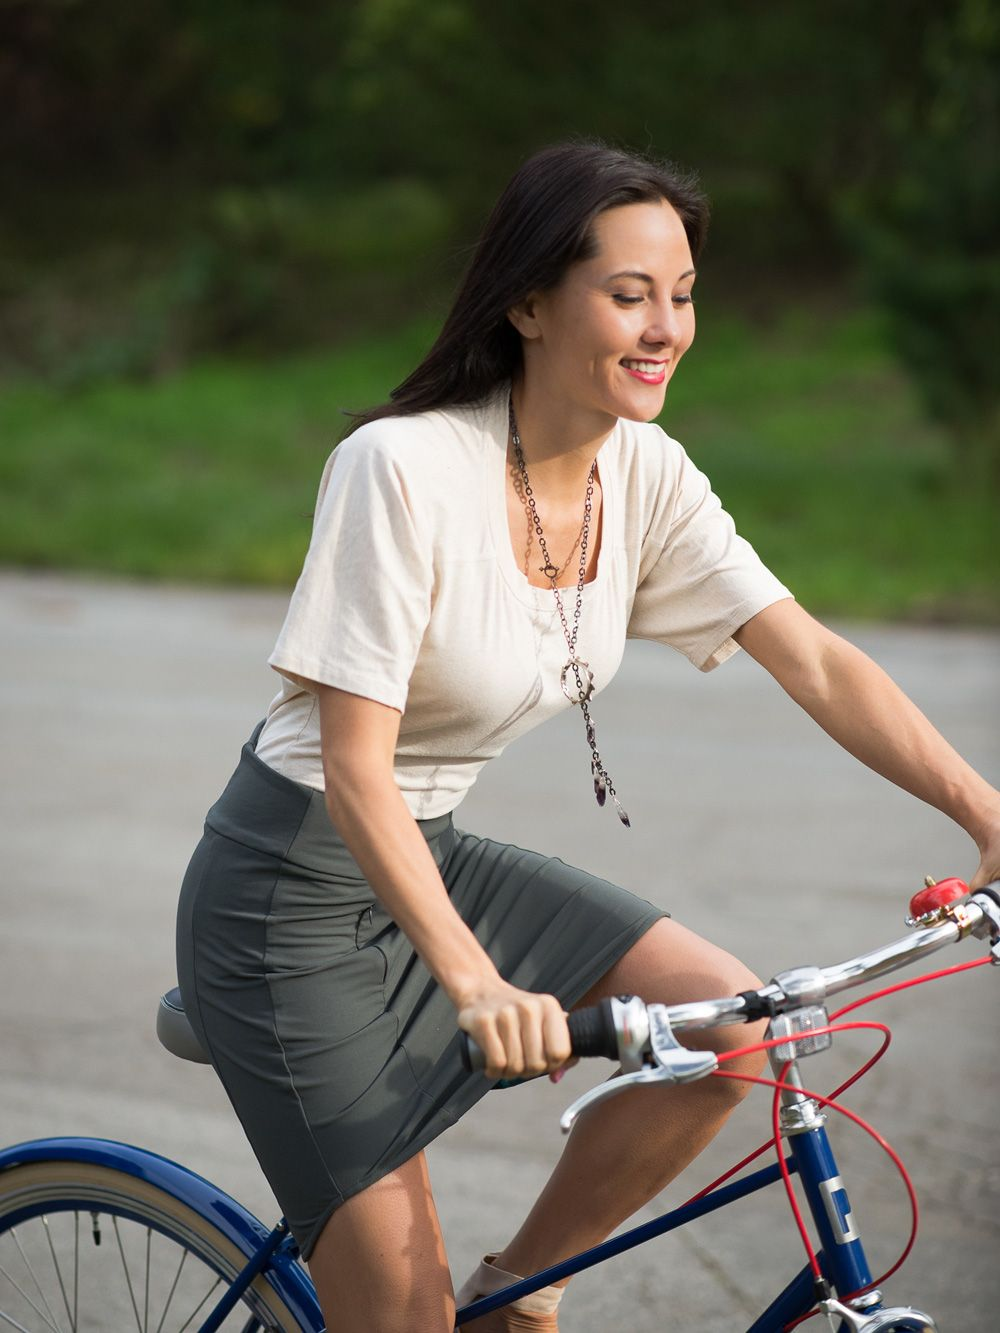 Ride A Bike In A Skirt And Top From Iladora Bike Skirt Bike